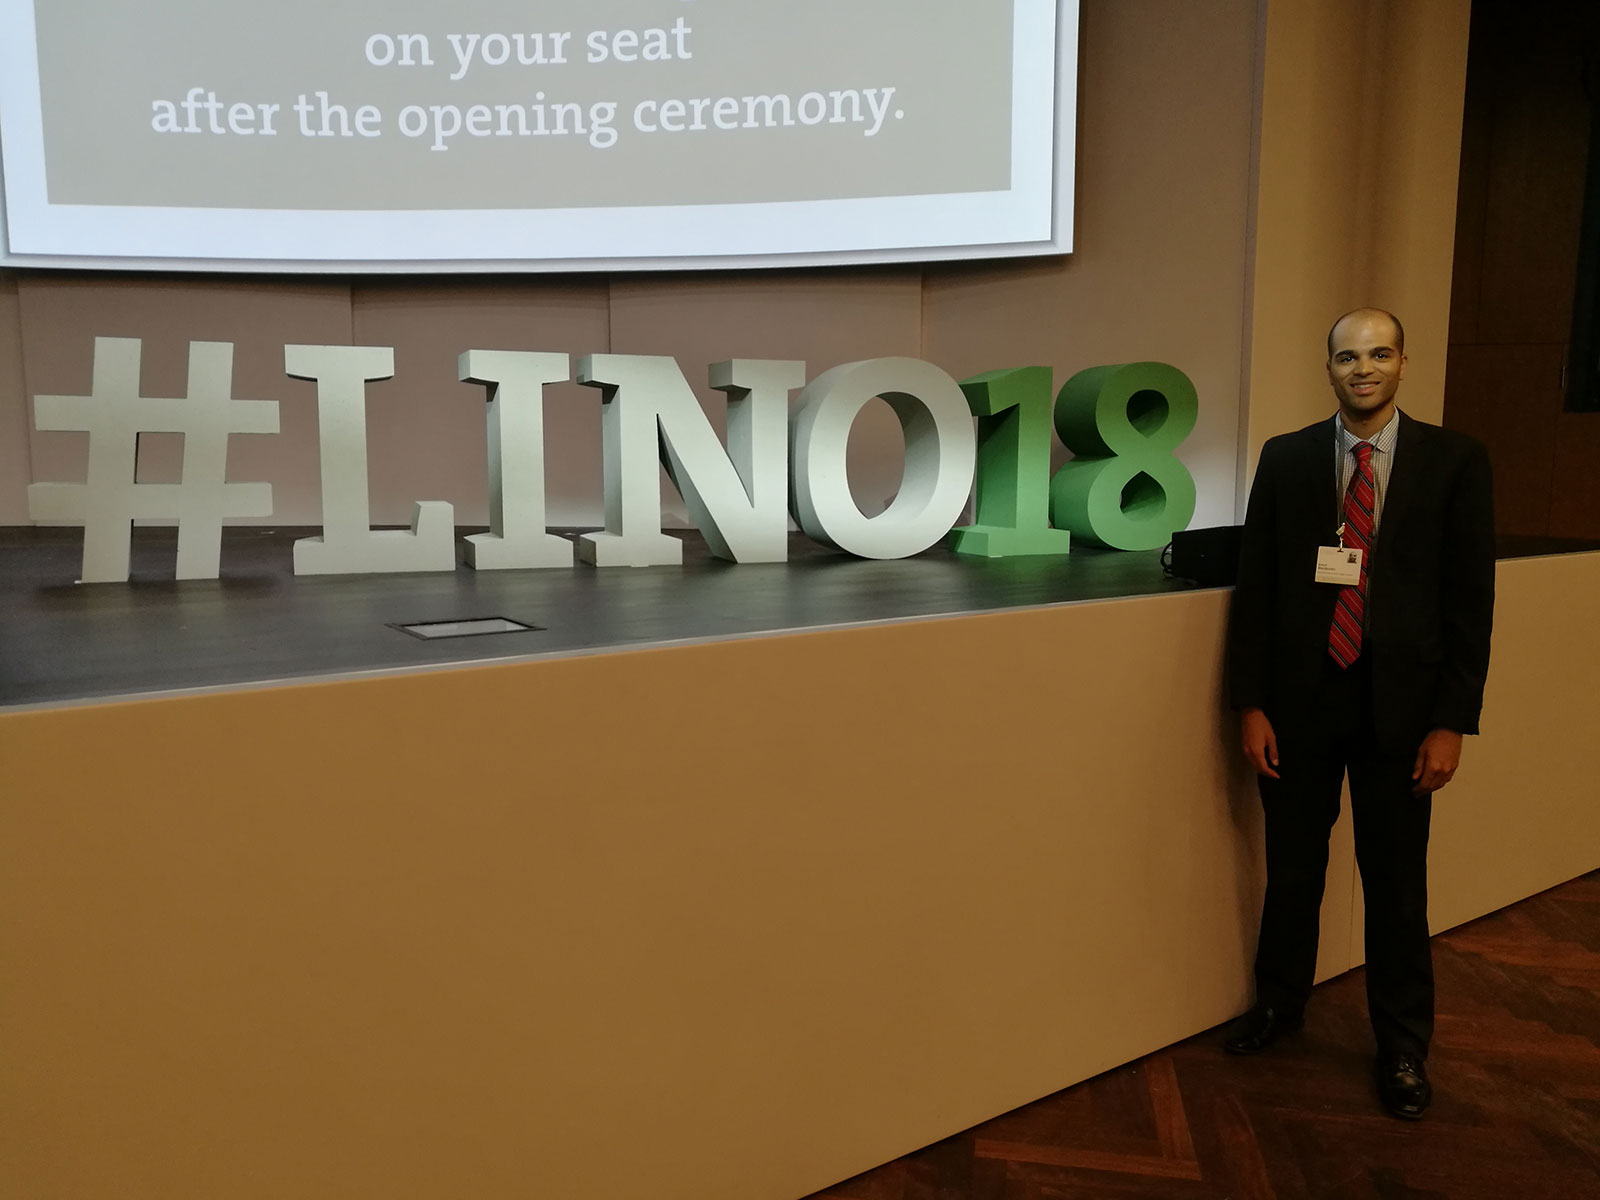 Penn State College of Medicine Biomedical Sciences PhD student Robert Nwokonko traveled to Lindau, Germany, for the 68th Lindau Nobel Laureate Meeting, held June 24 to 29, 2018. Nwokonko is pictured standing in a large space with three-dimensional letters spelling out #LINO18 standing next to him on a wall or ledge.